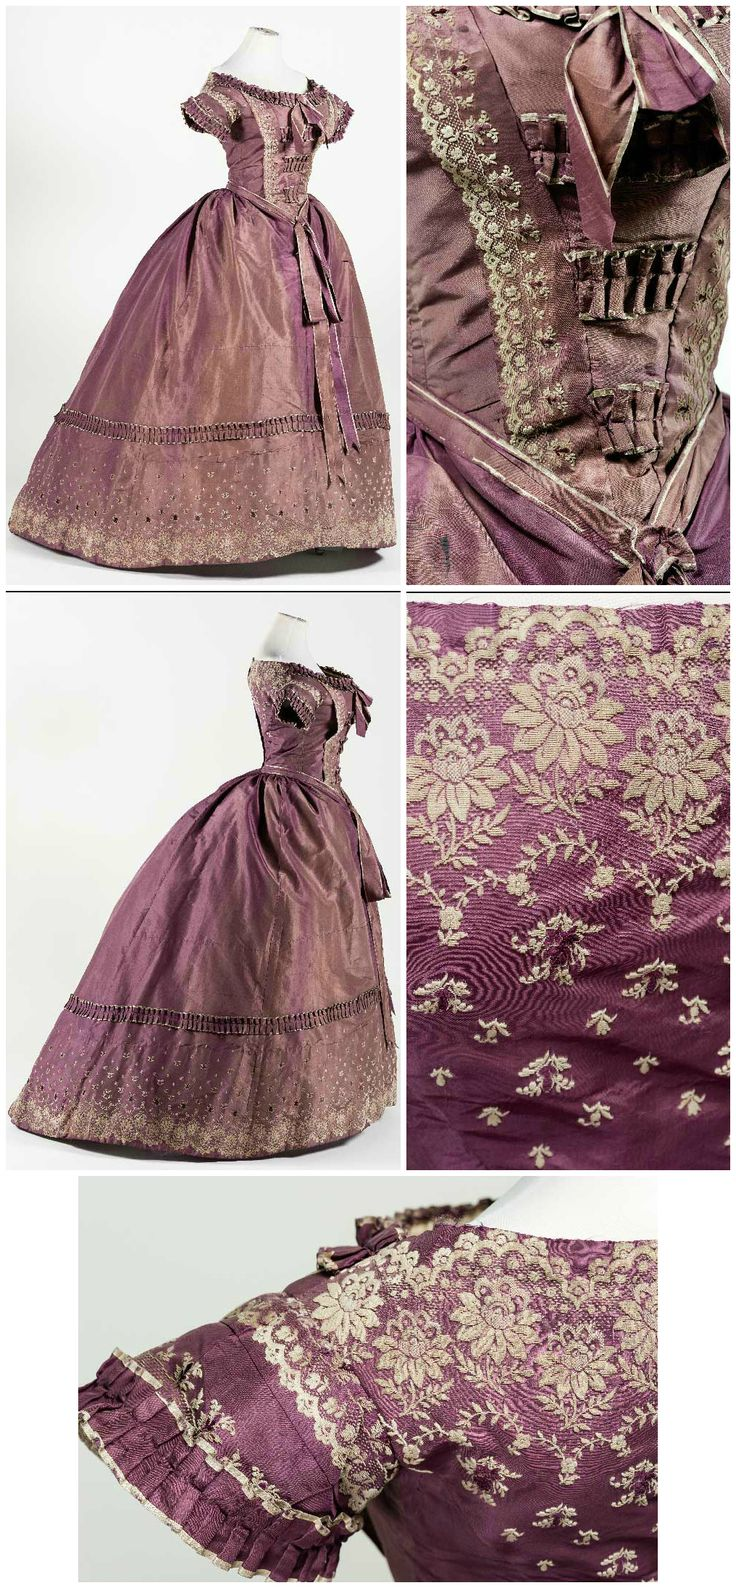 Handstitched dress, taffeta with brocade velvet, 1860. (Belonged to Empress Carlota of Mexico?) Collection of Museo Nacional de Historia, Castillo de Chapultepec. Photos: Omar Dumaine, via Instituto Nacional de Antropología e Historia (link: http://www.inah.gob.mx/multimedia/hilos_mnh/moda_femenina/moda_femenina.html). CLICK FOR LARGER IMAGES.